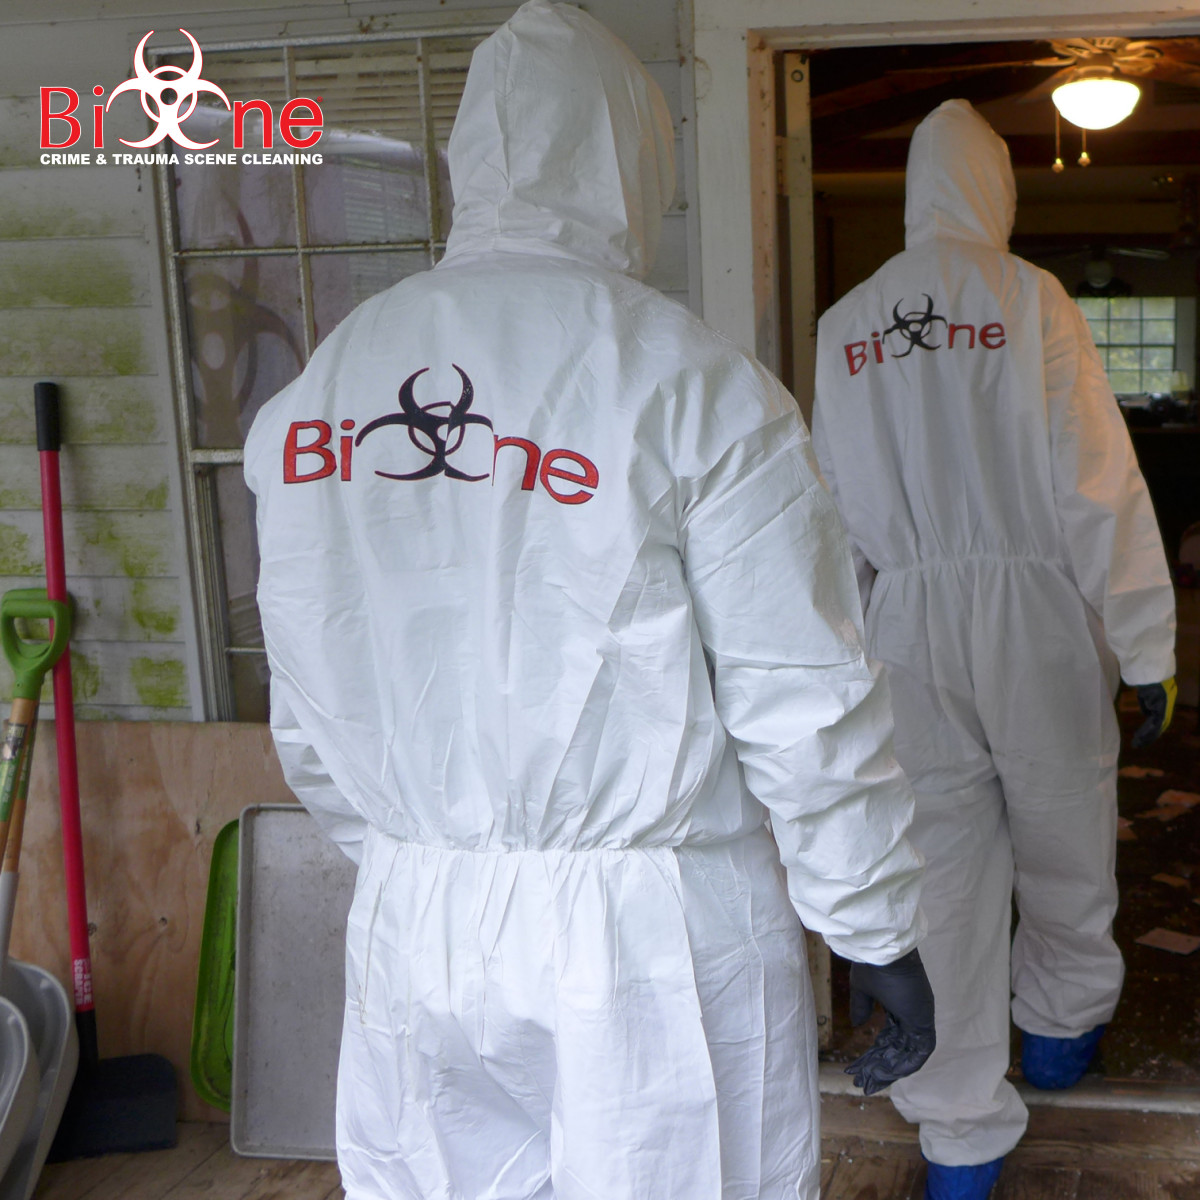 Bio-One:  The Remediation and Decontamination Professionals